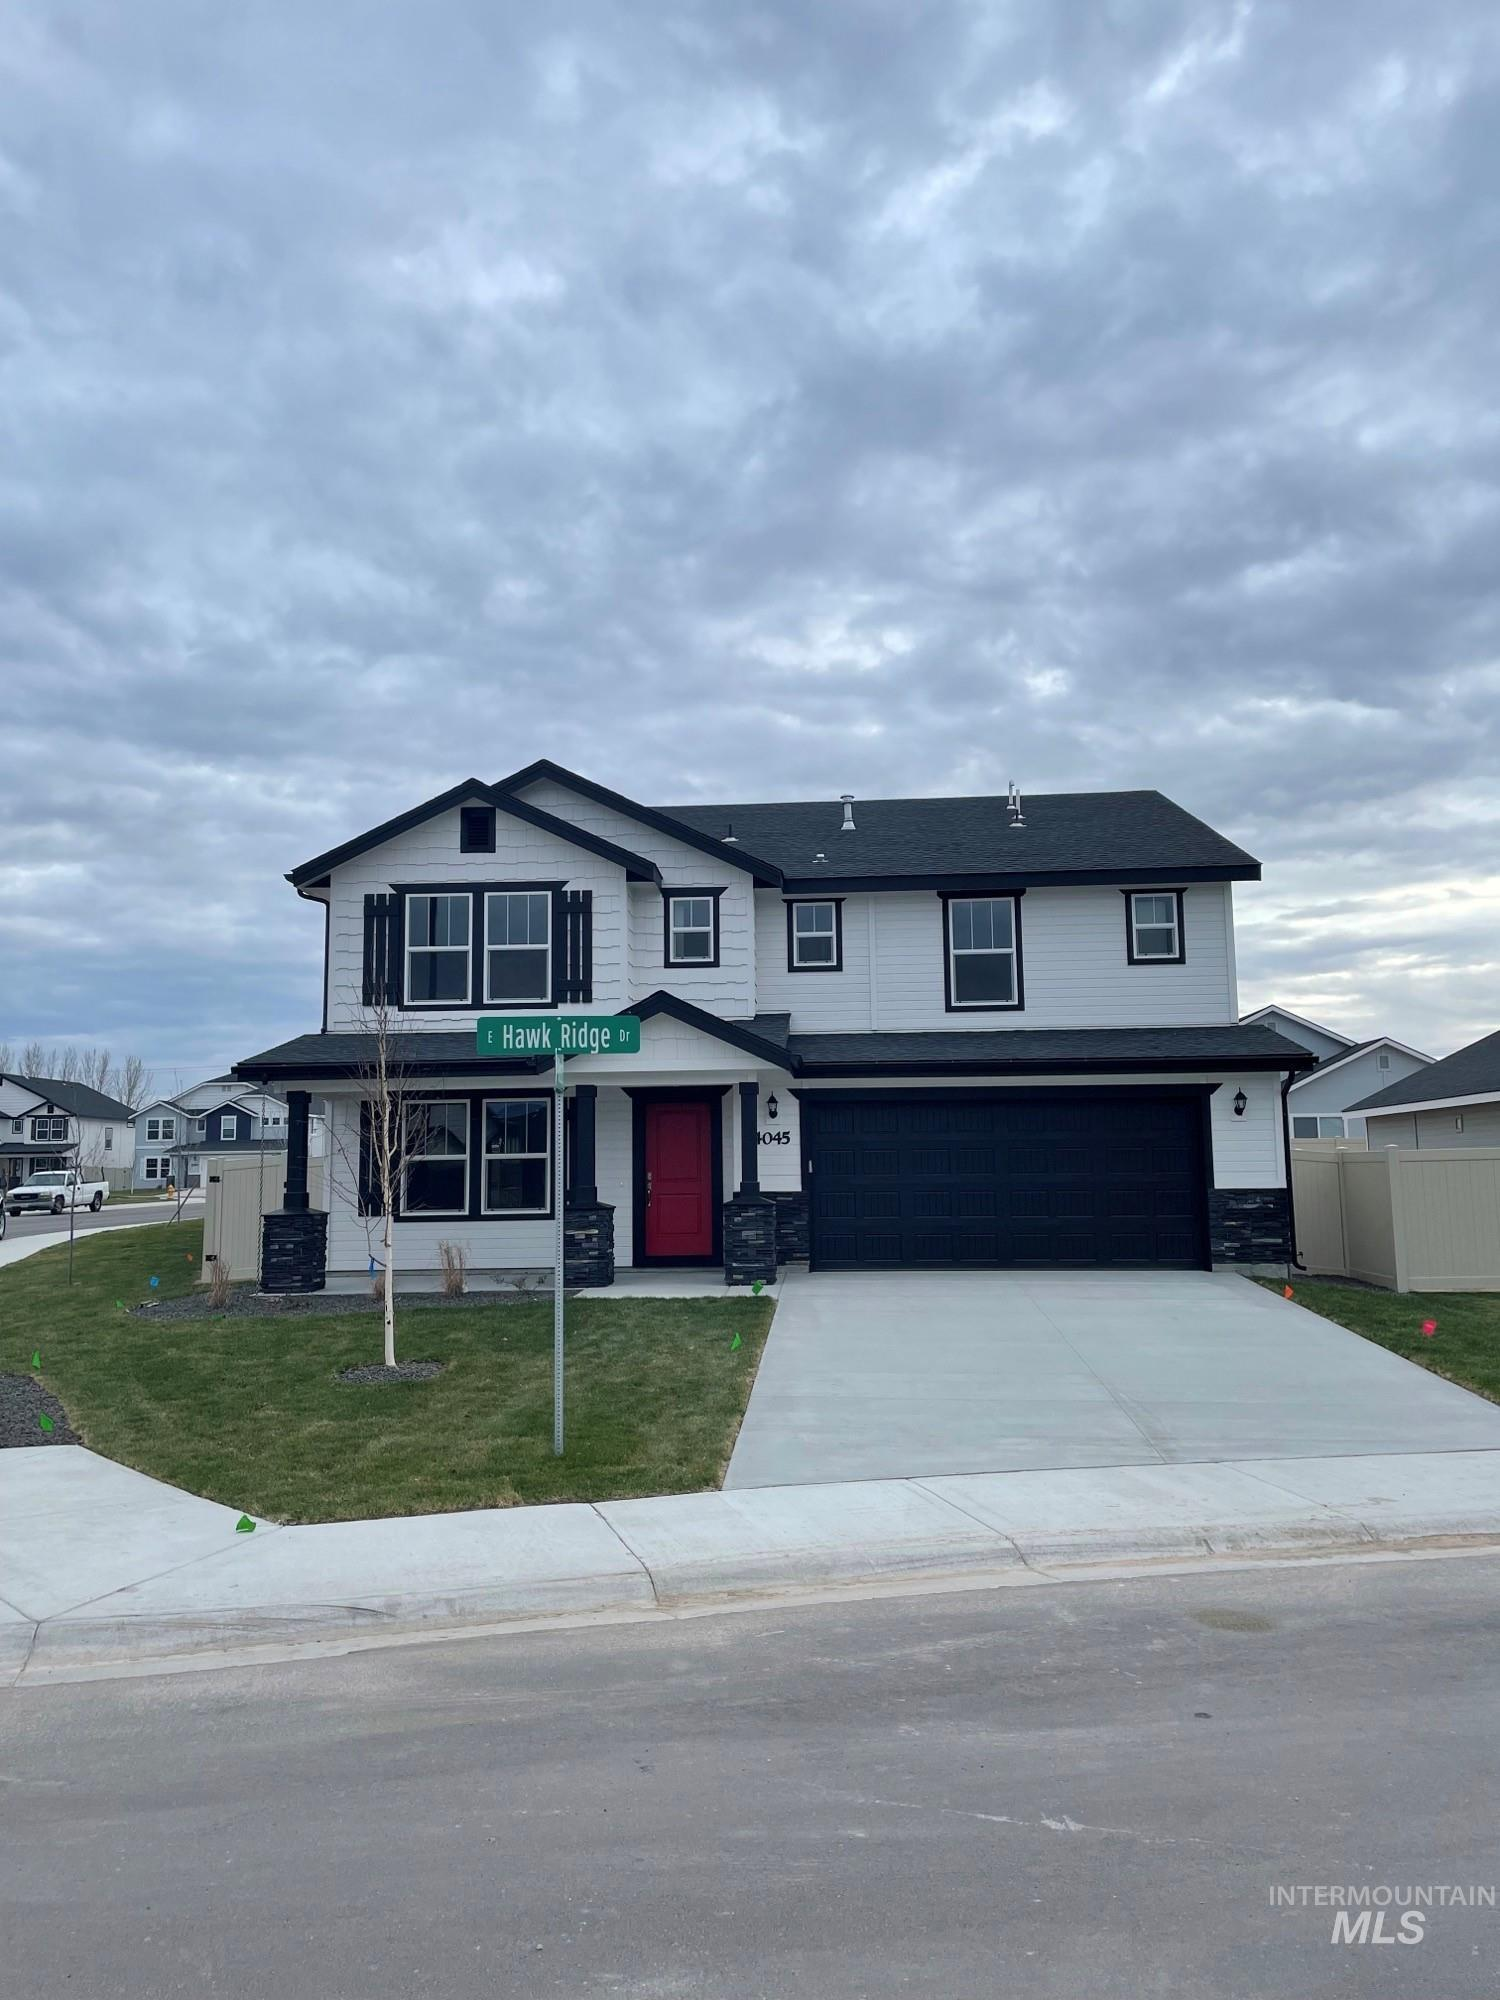 Pre-sold Spruce with Craftsman Elevation. Photo Similar. This home features lvp, granite kitchen countertops, upgraded cabinets, full tiled walk-in shower,  deluxe kitchen with built-in double oven, full sprinklers, extended patio, butlers pantry, and much more!